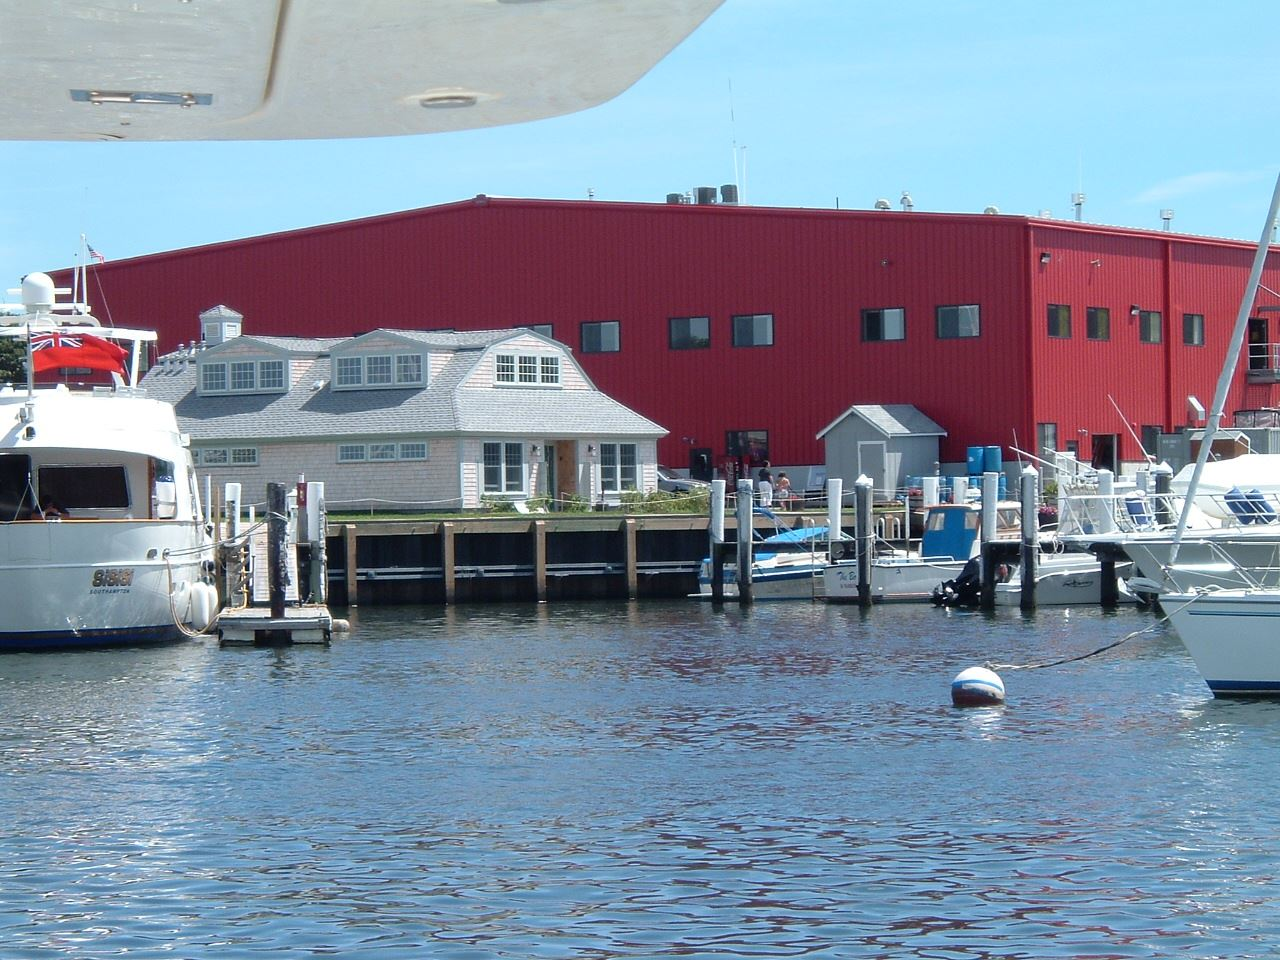 MacDougalls Members Clubhouse and Boat Storage Building